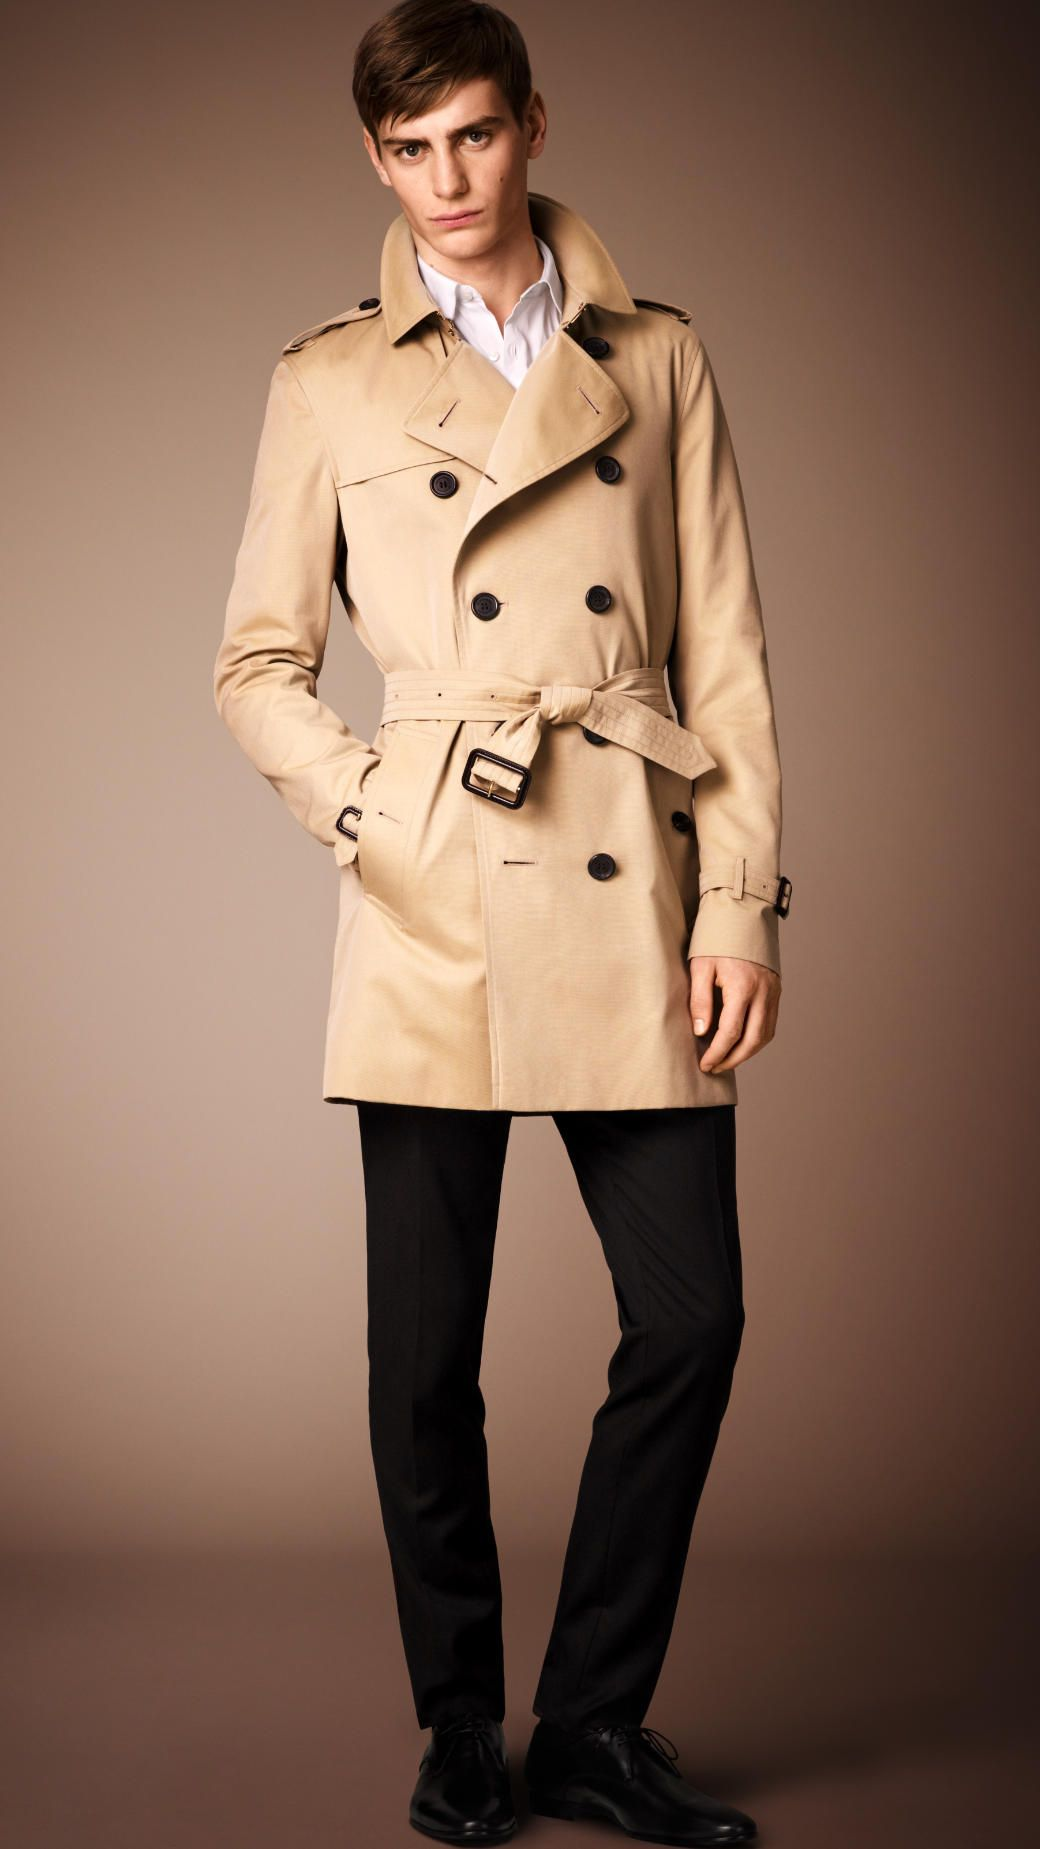 aba227fdab7a The Kensington - Trench-coat mi-long Heritage   Burberry   Style ...